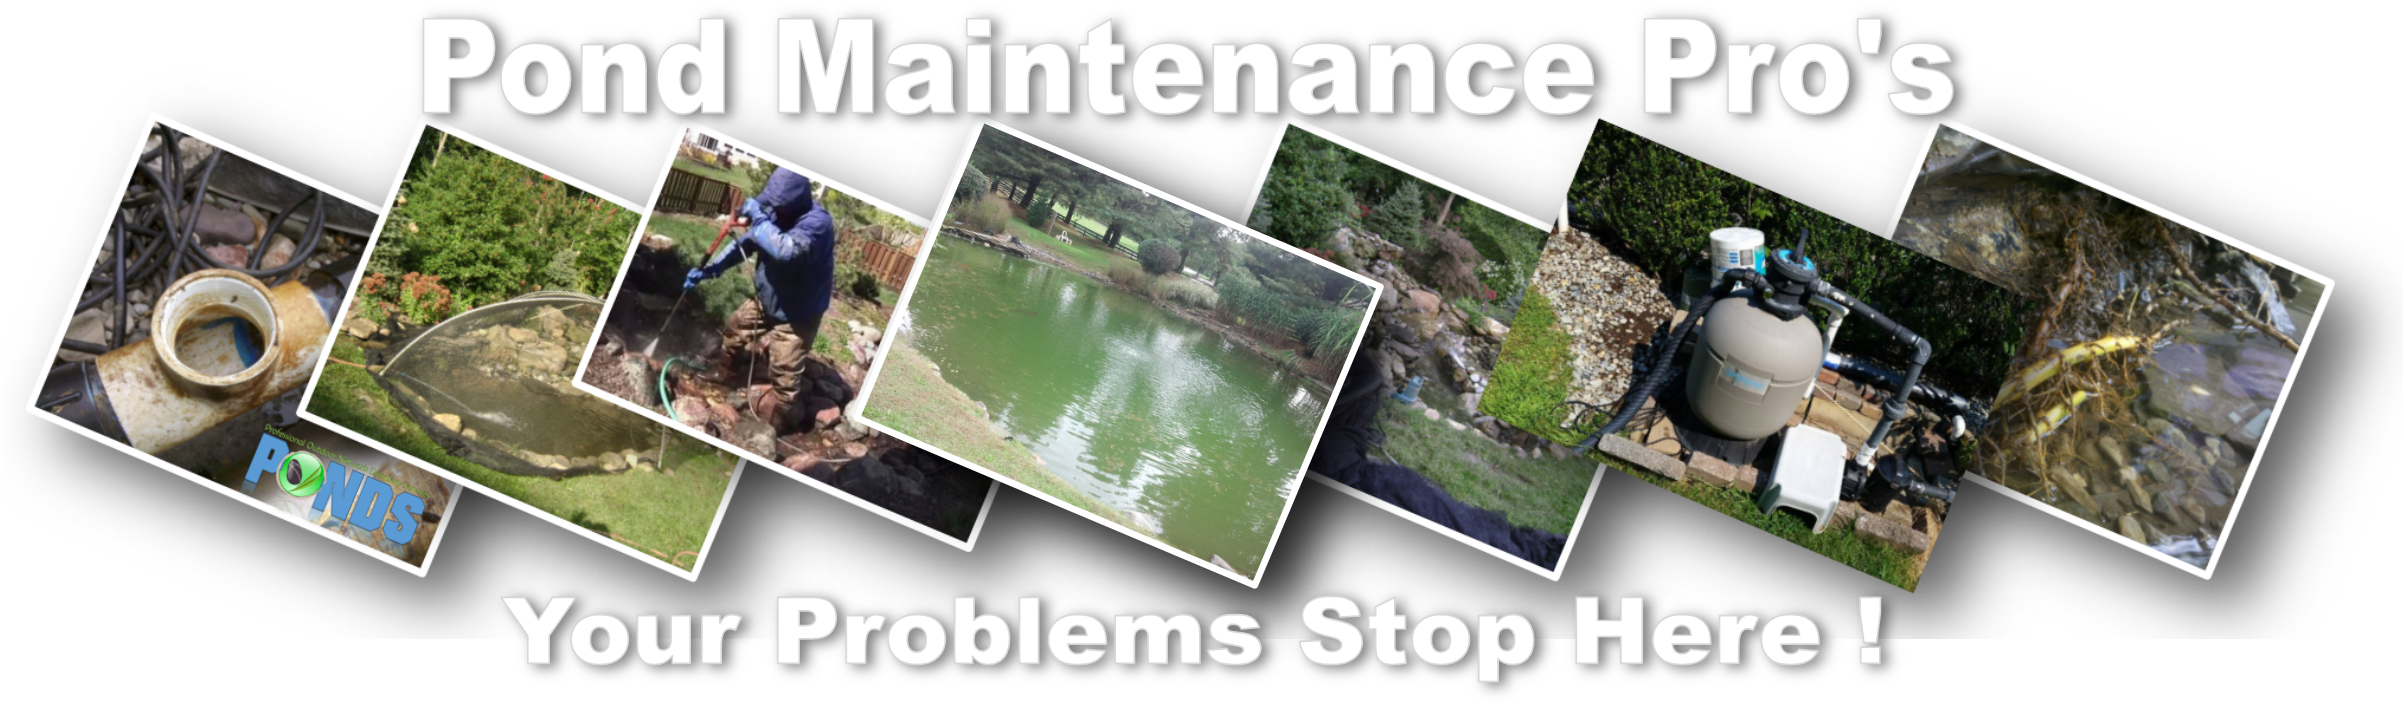 Maintenance repair renovation services. Lake clipart garden pond